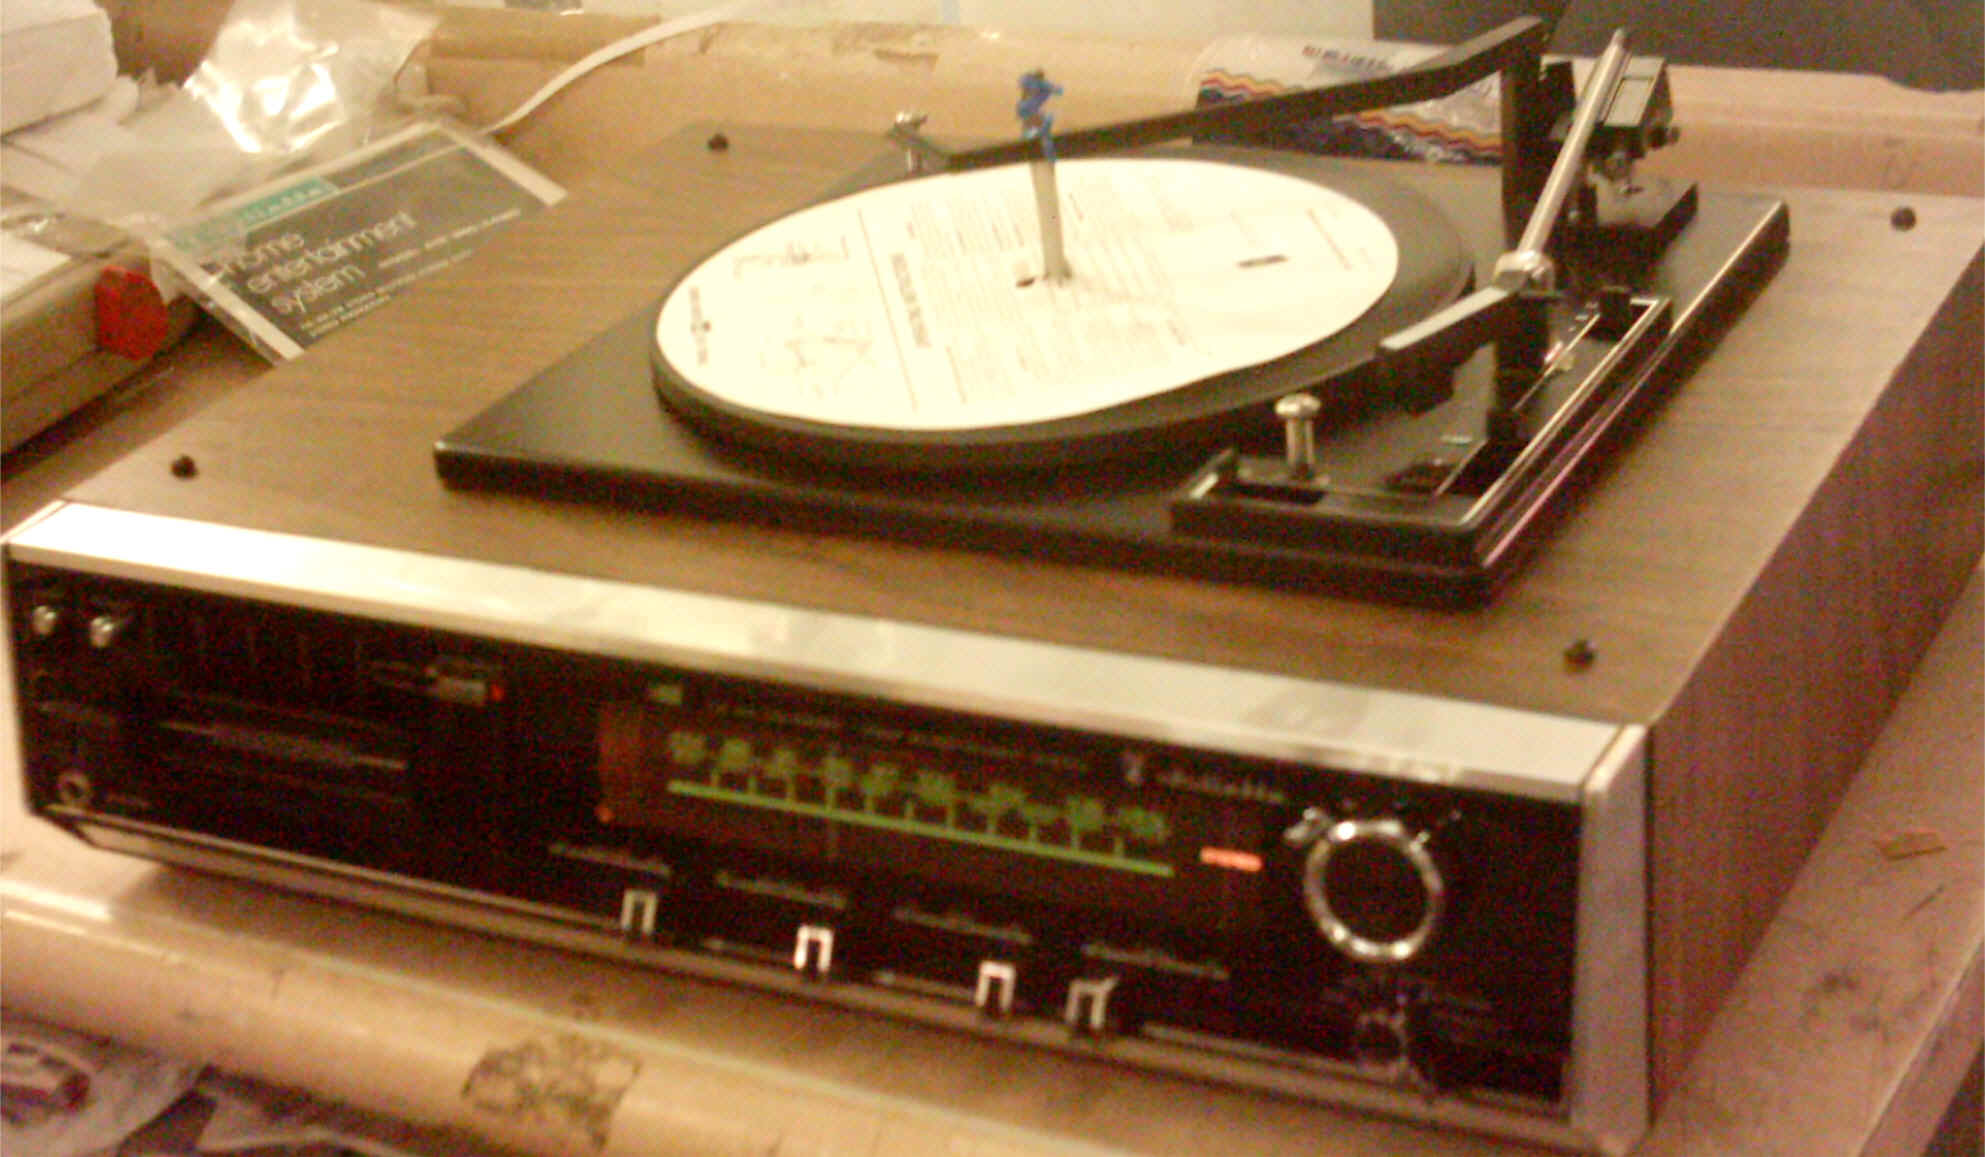 Juliette 8tr 1880 C4320 Am Fm Stereo 8 Track With Three